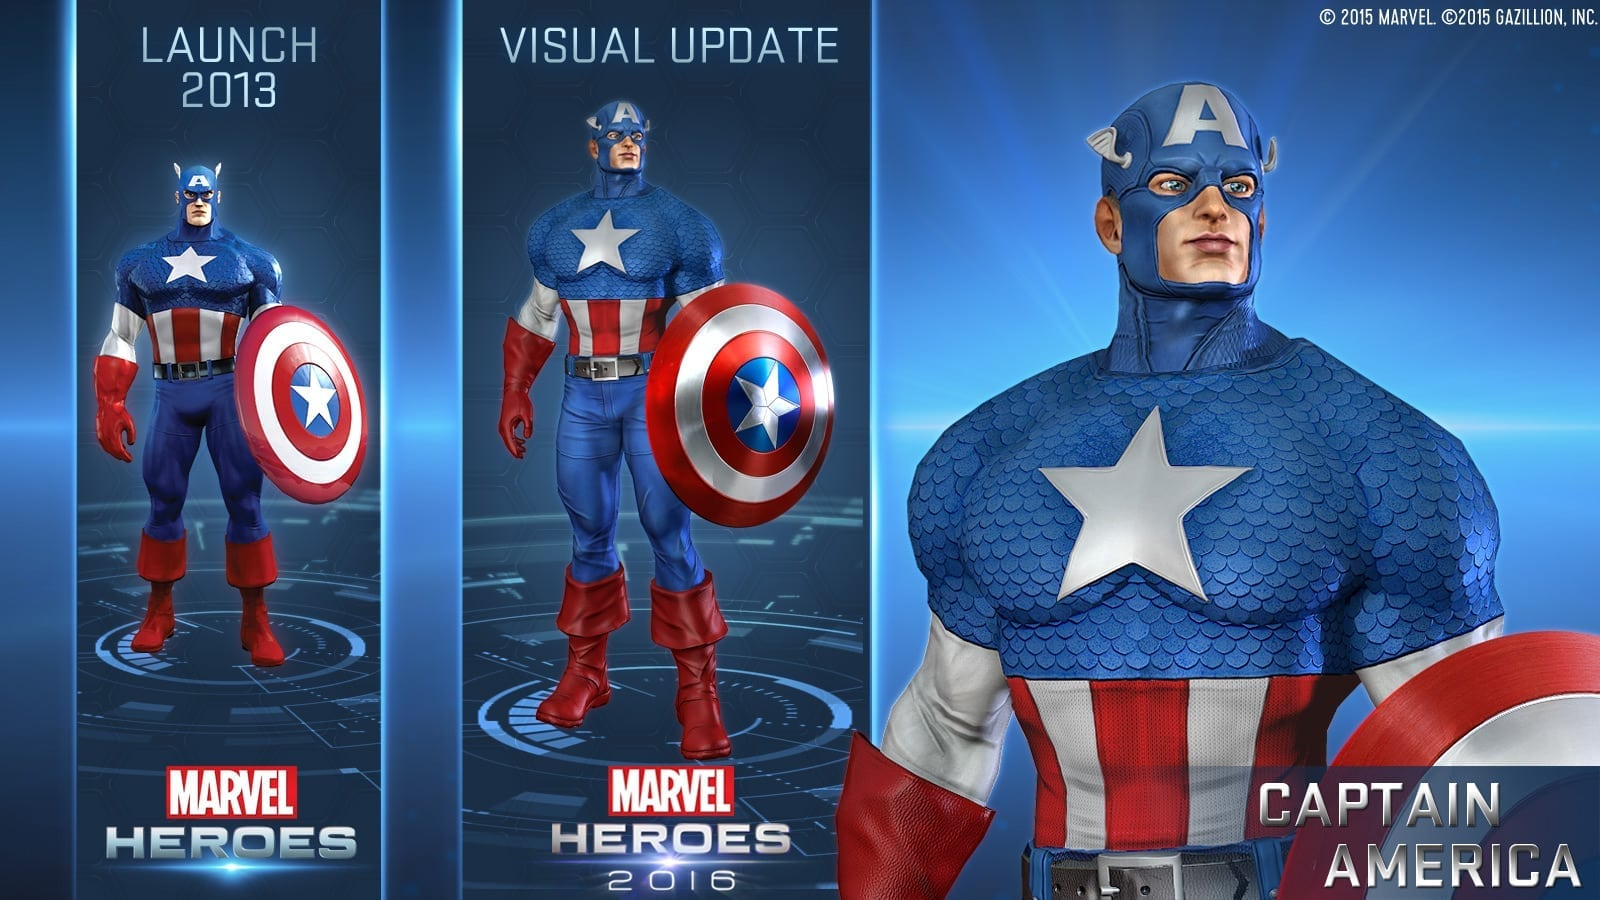 Marvel Heroes 2016 - Captain America visual update